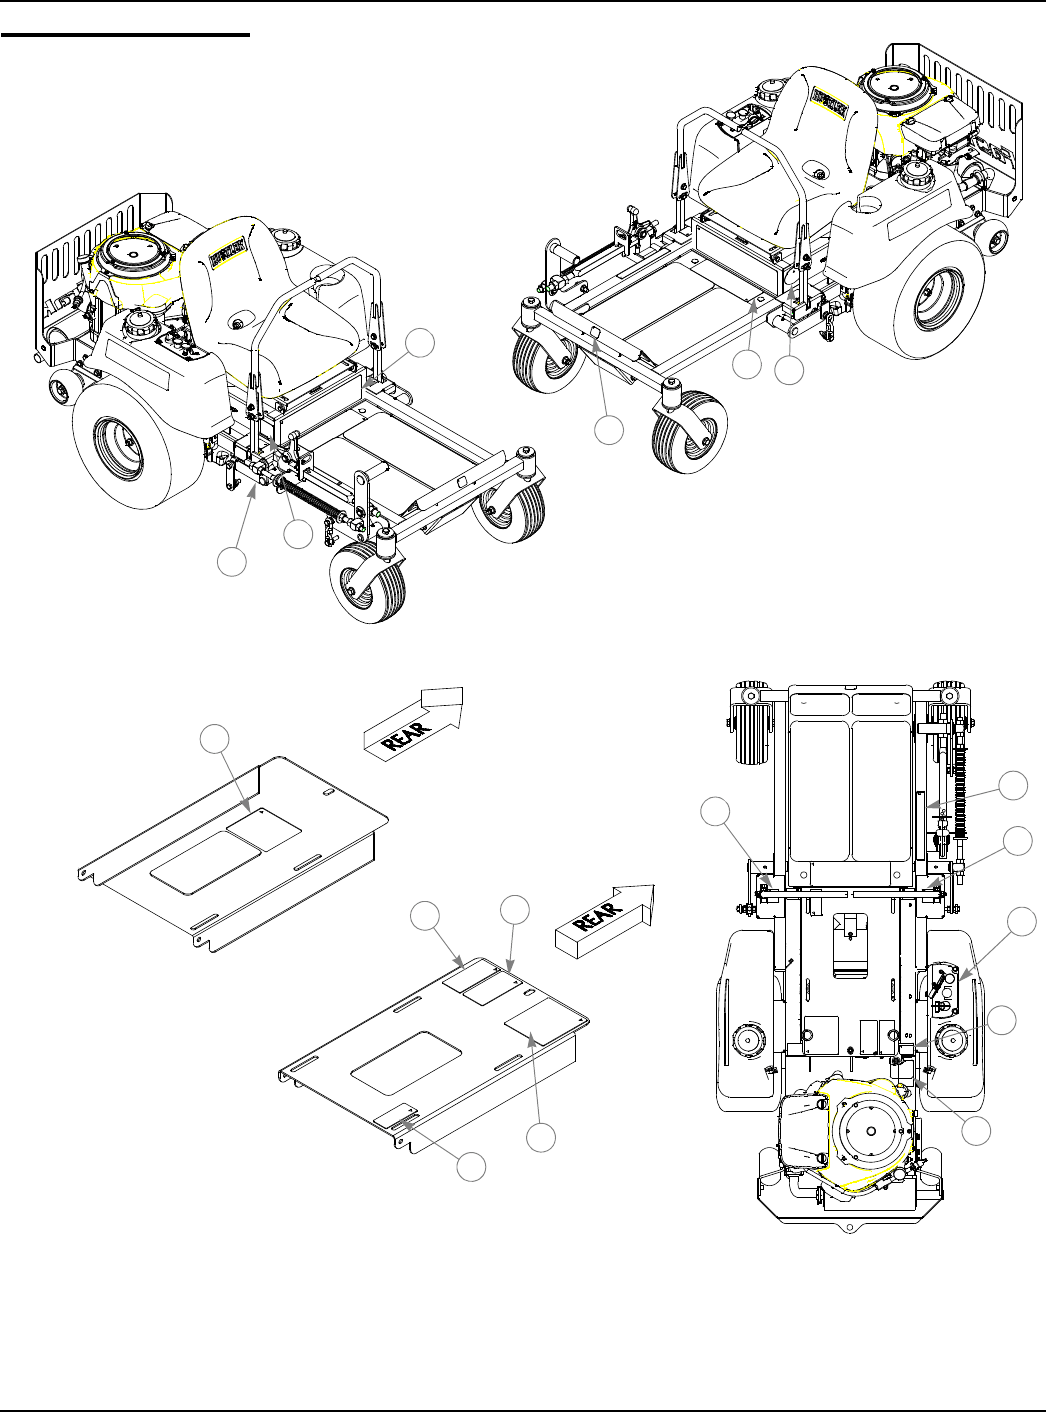 Page 66 of Hustler Turf Lawn Mower none User Guide